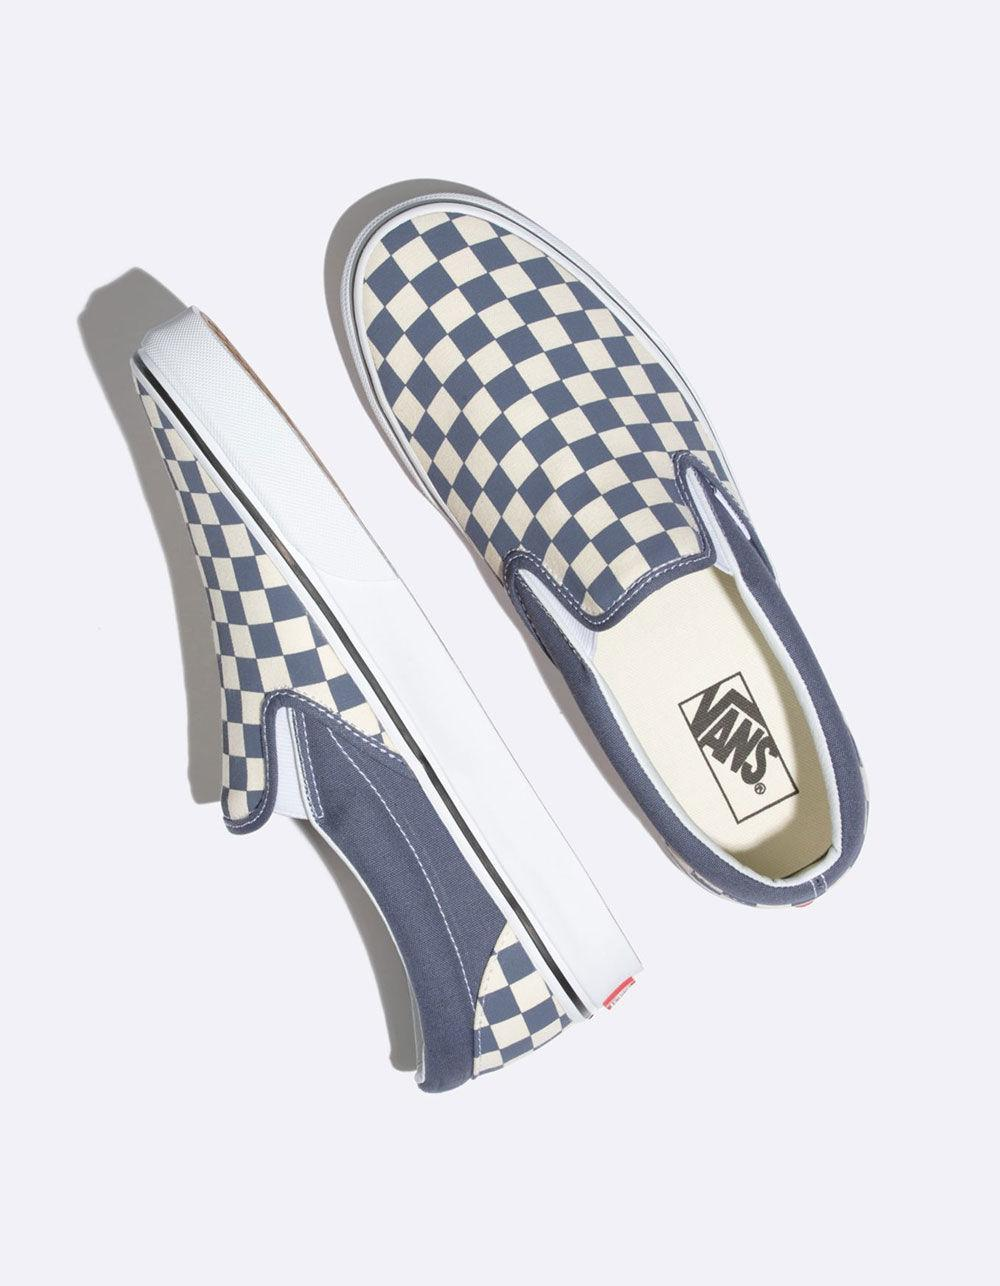 Vans - Checkerboard Grisaille   True White Classic Slip-on Shoes for Men -  Lyst. View fullscreen 7f2502848